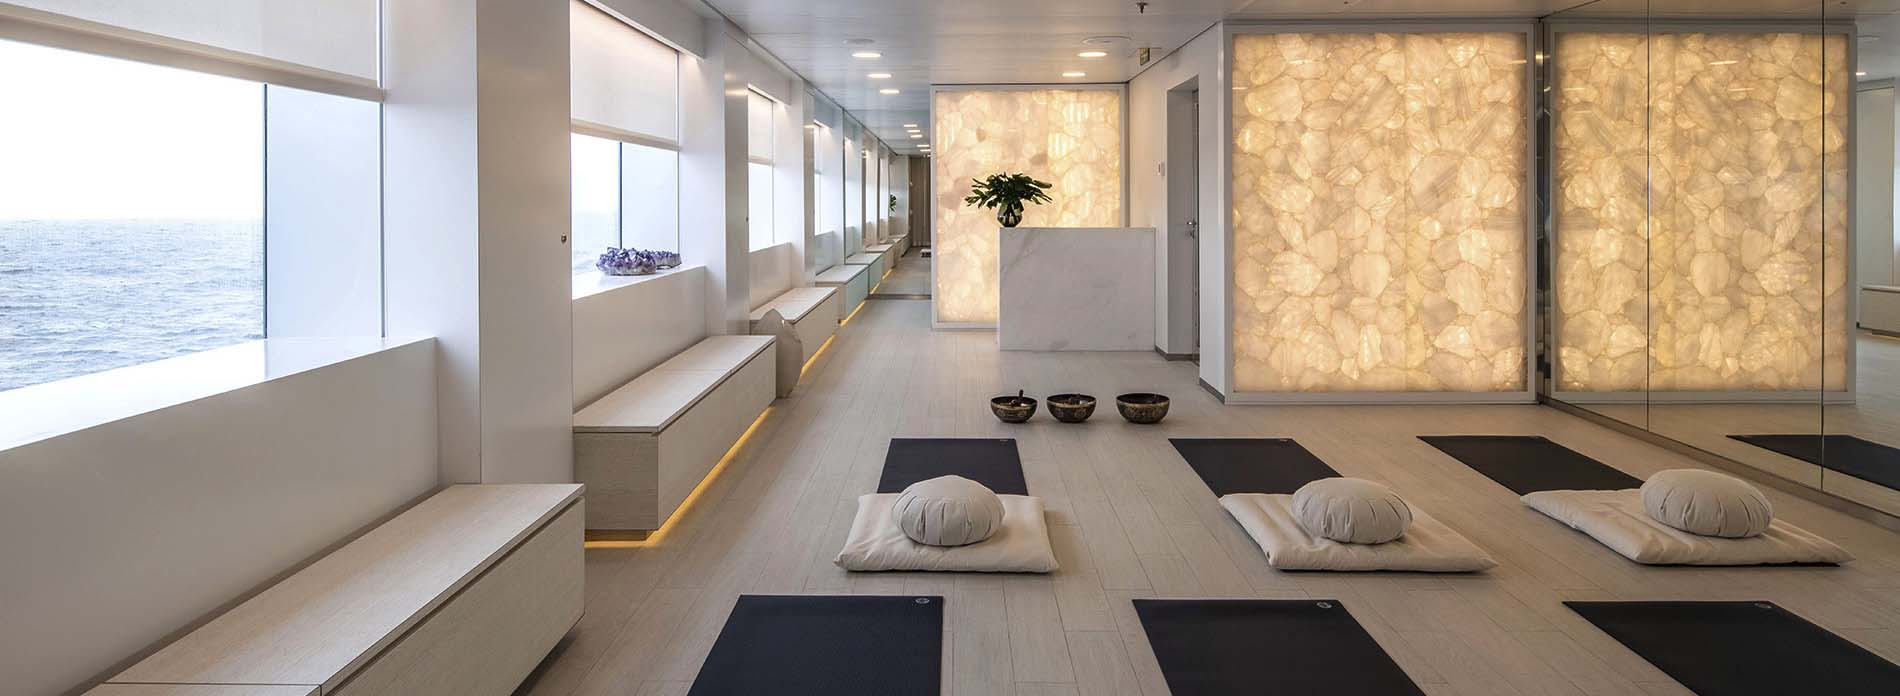 Scenic Eclipse Yoga and Pilates studio